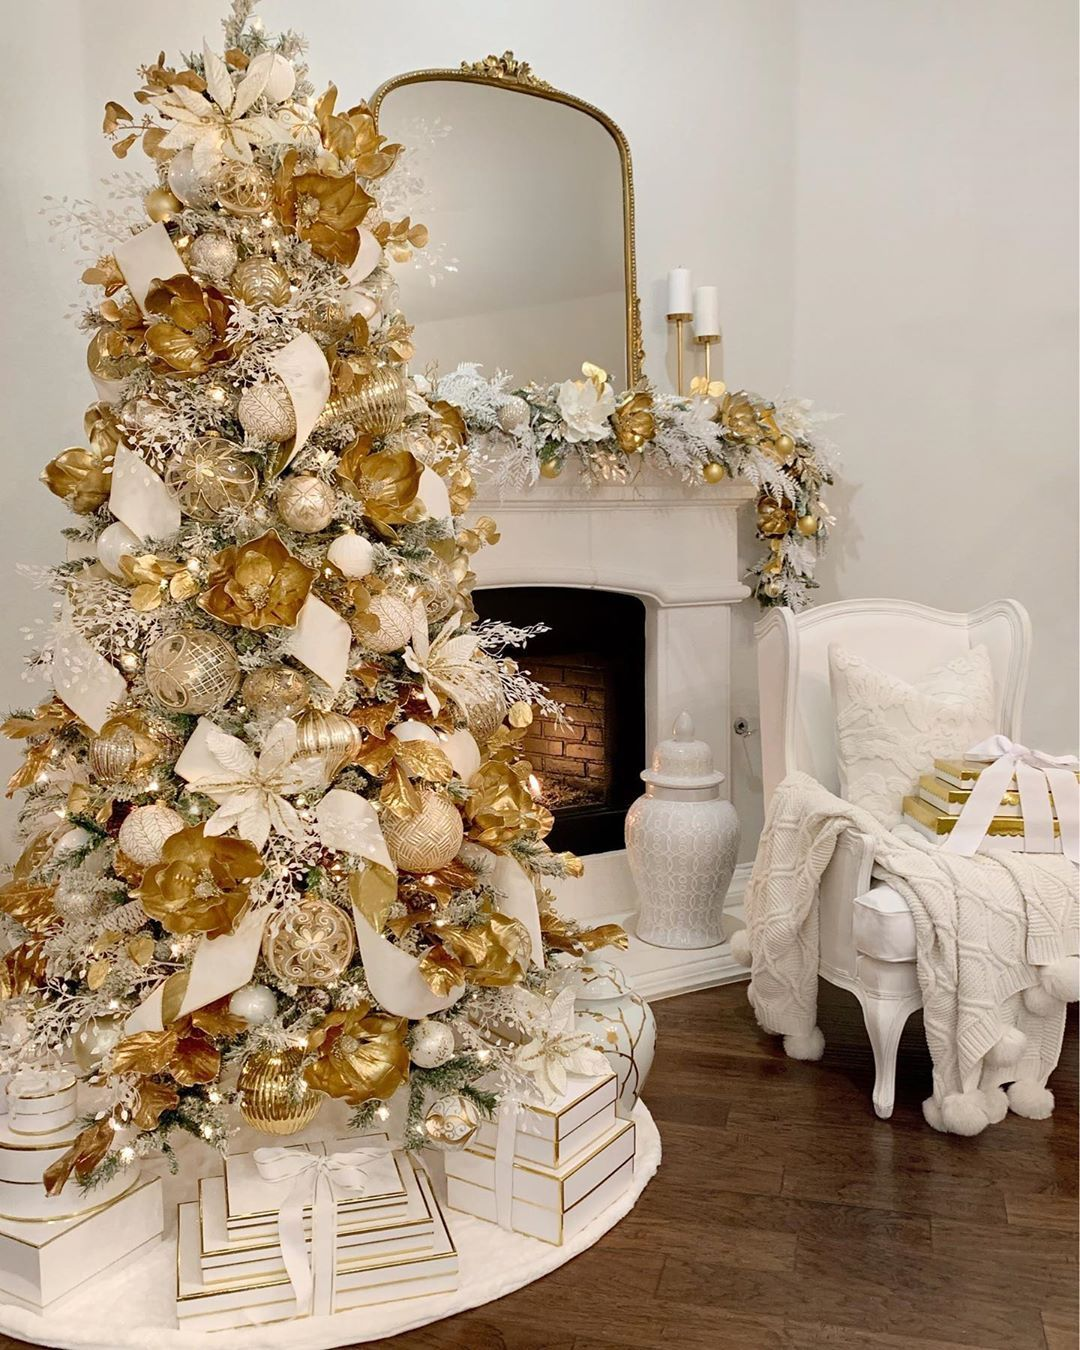 Elegant White And Gold Glam Christmas Tree Decor Gold Magnolia Flowers And Leaf Spray Af Elegant Christmas Decor Classy Christmas Decor Elegant Christmas Trees